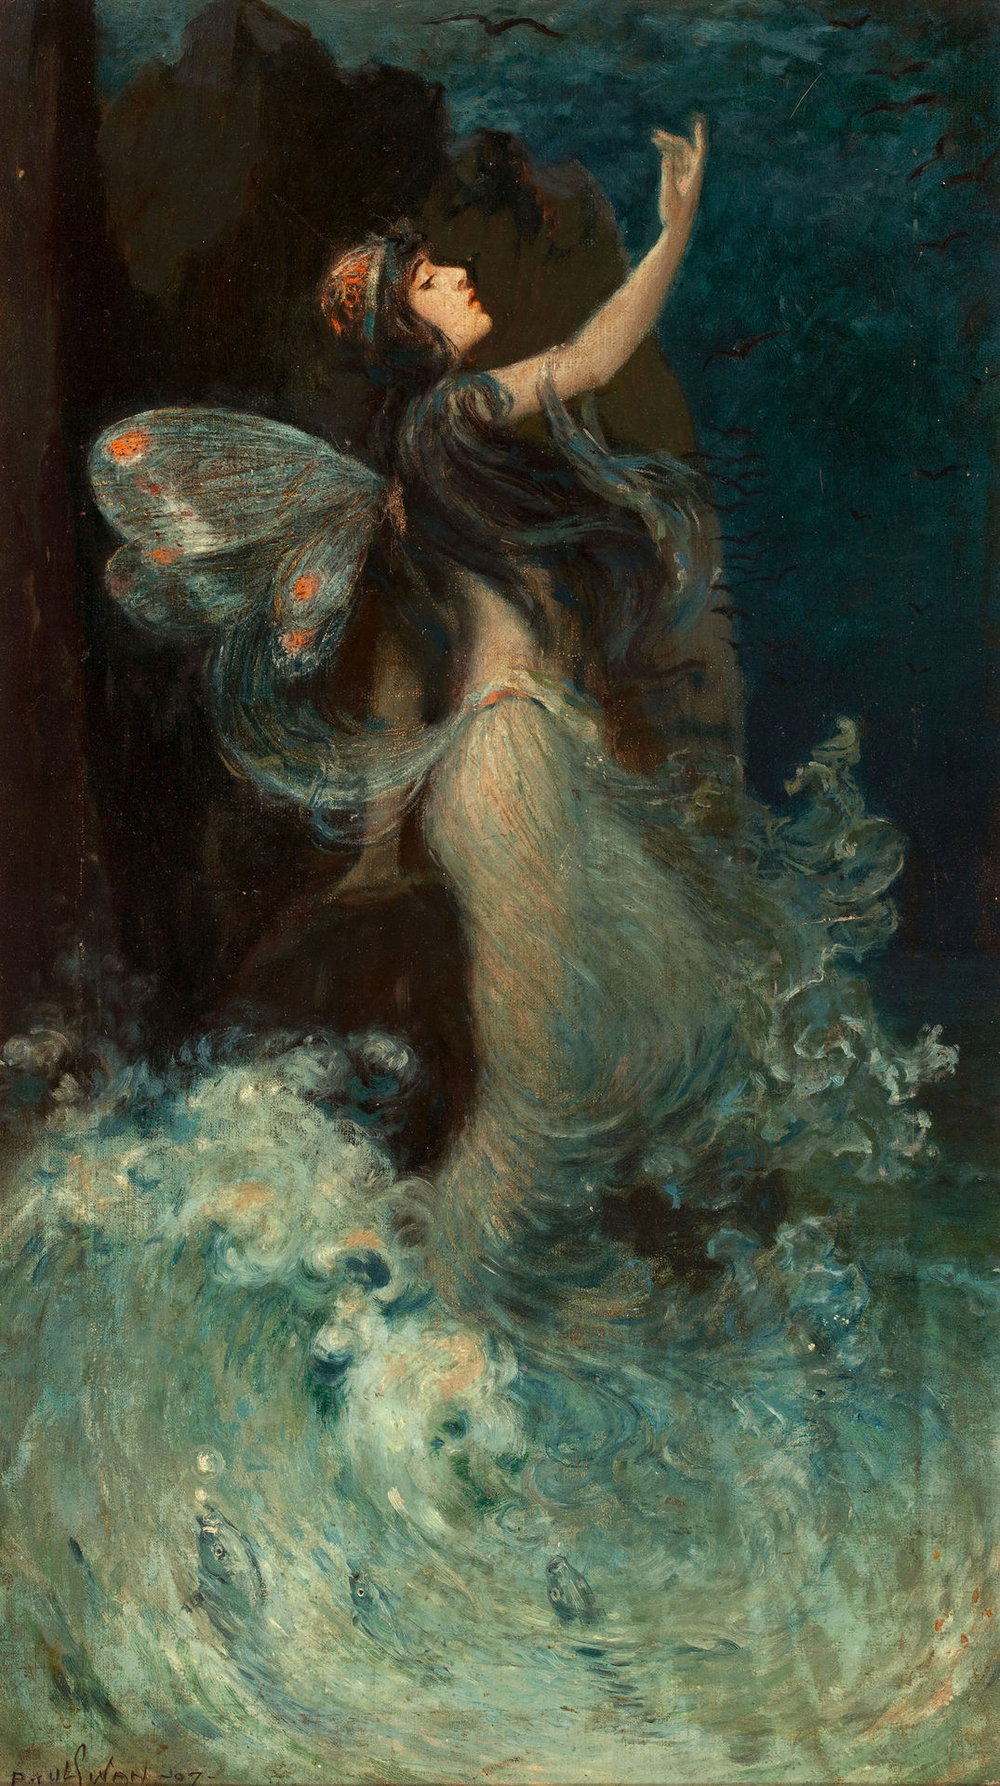 Paul Swan, Water Nymph, 1907